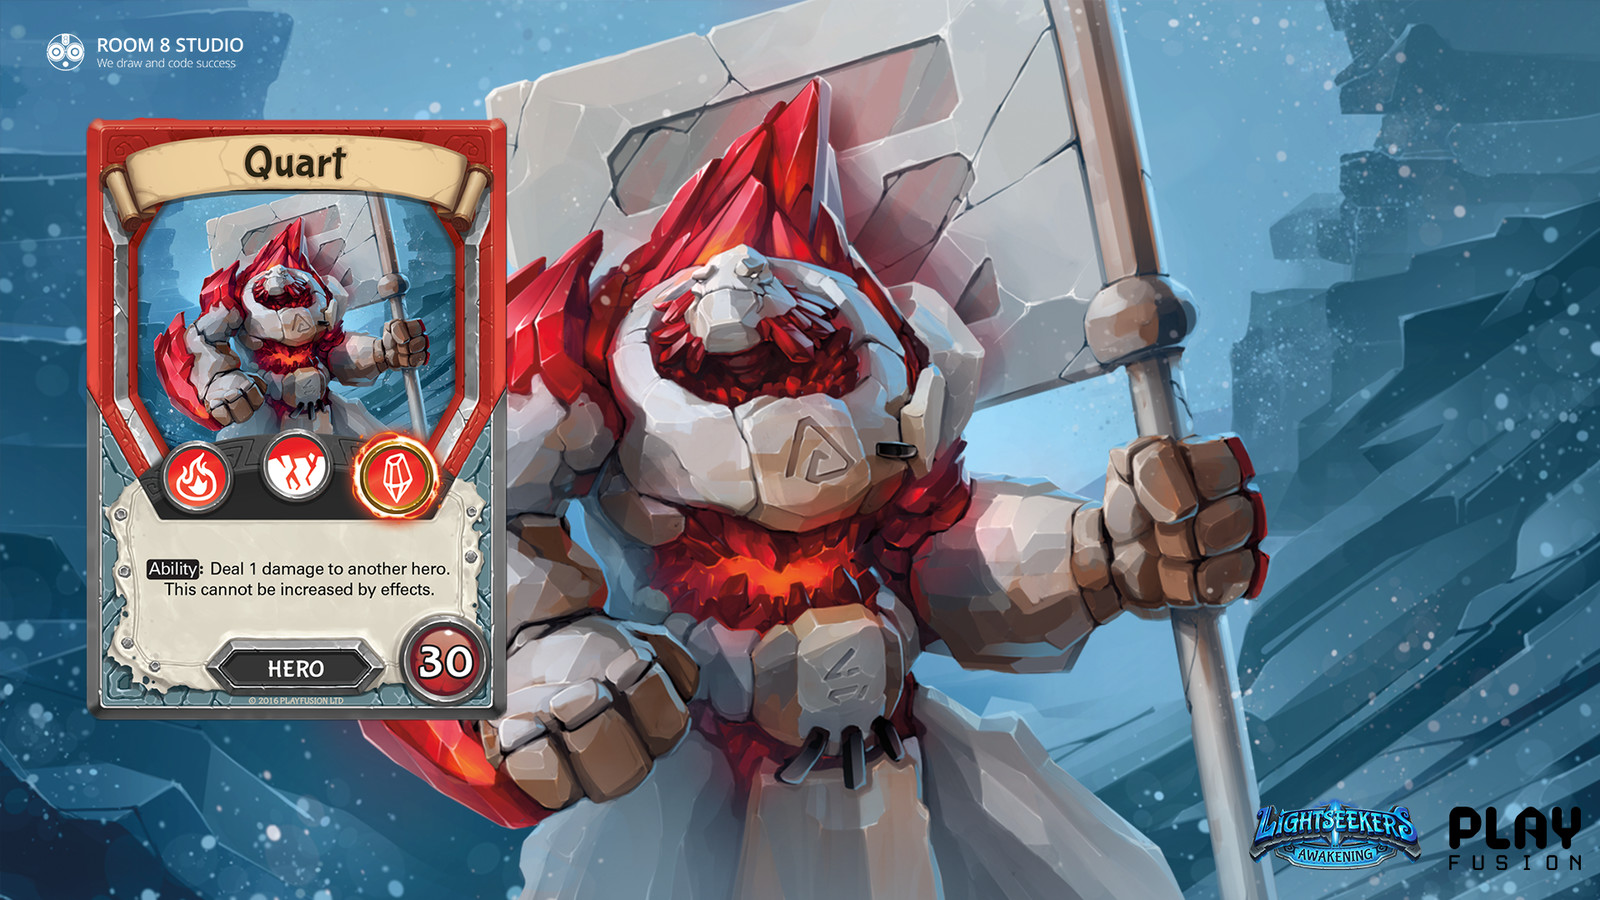 Lightseekers: Quart